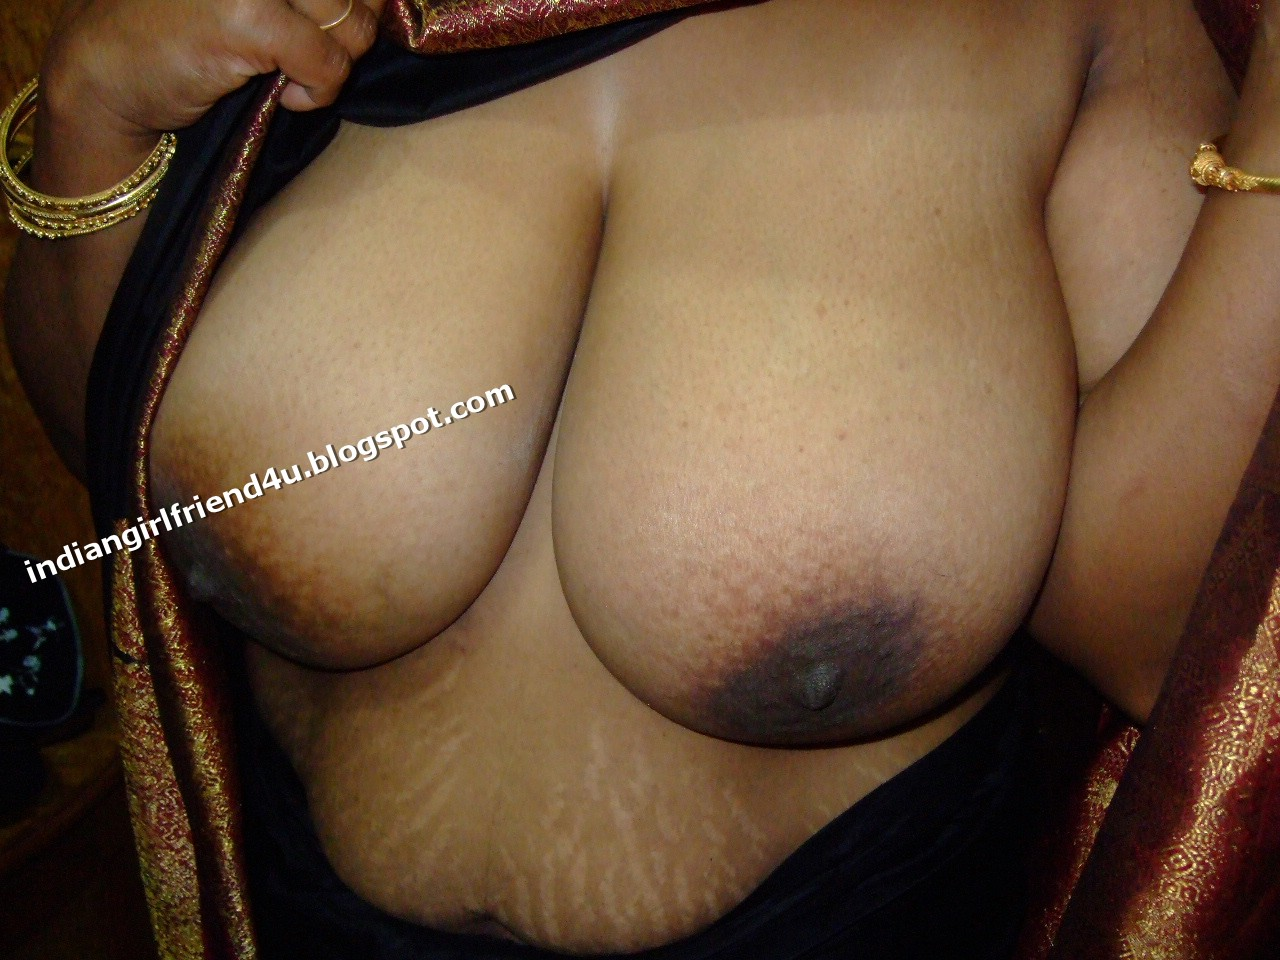 Hot Indian Girl Friends Down Blouse Nip Slip Wife